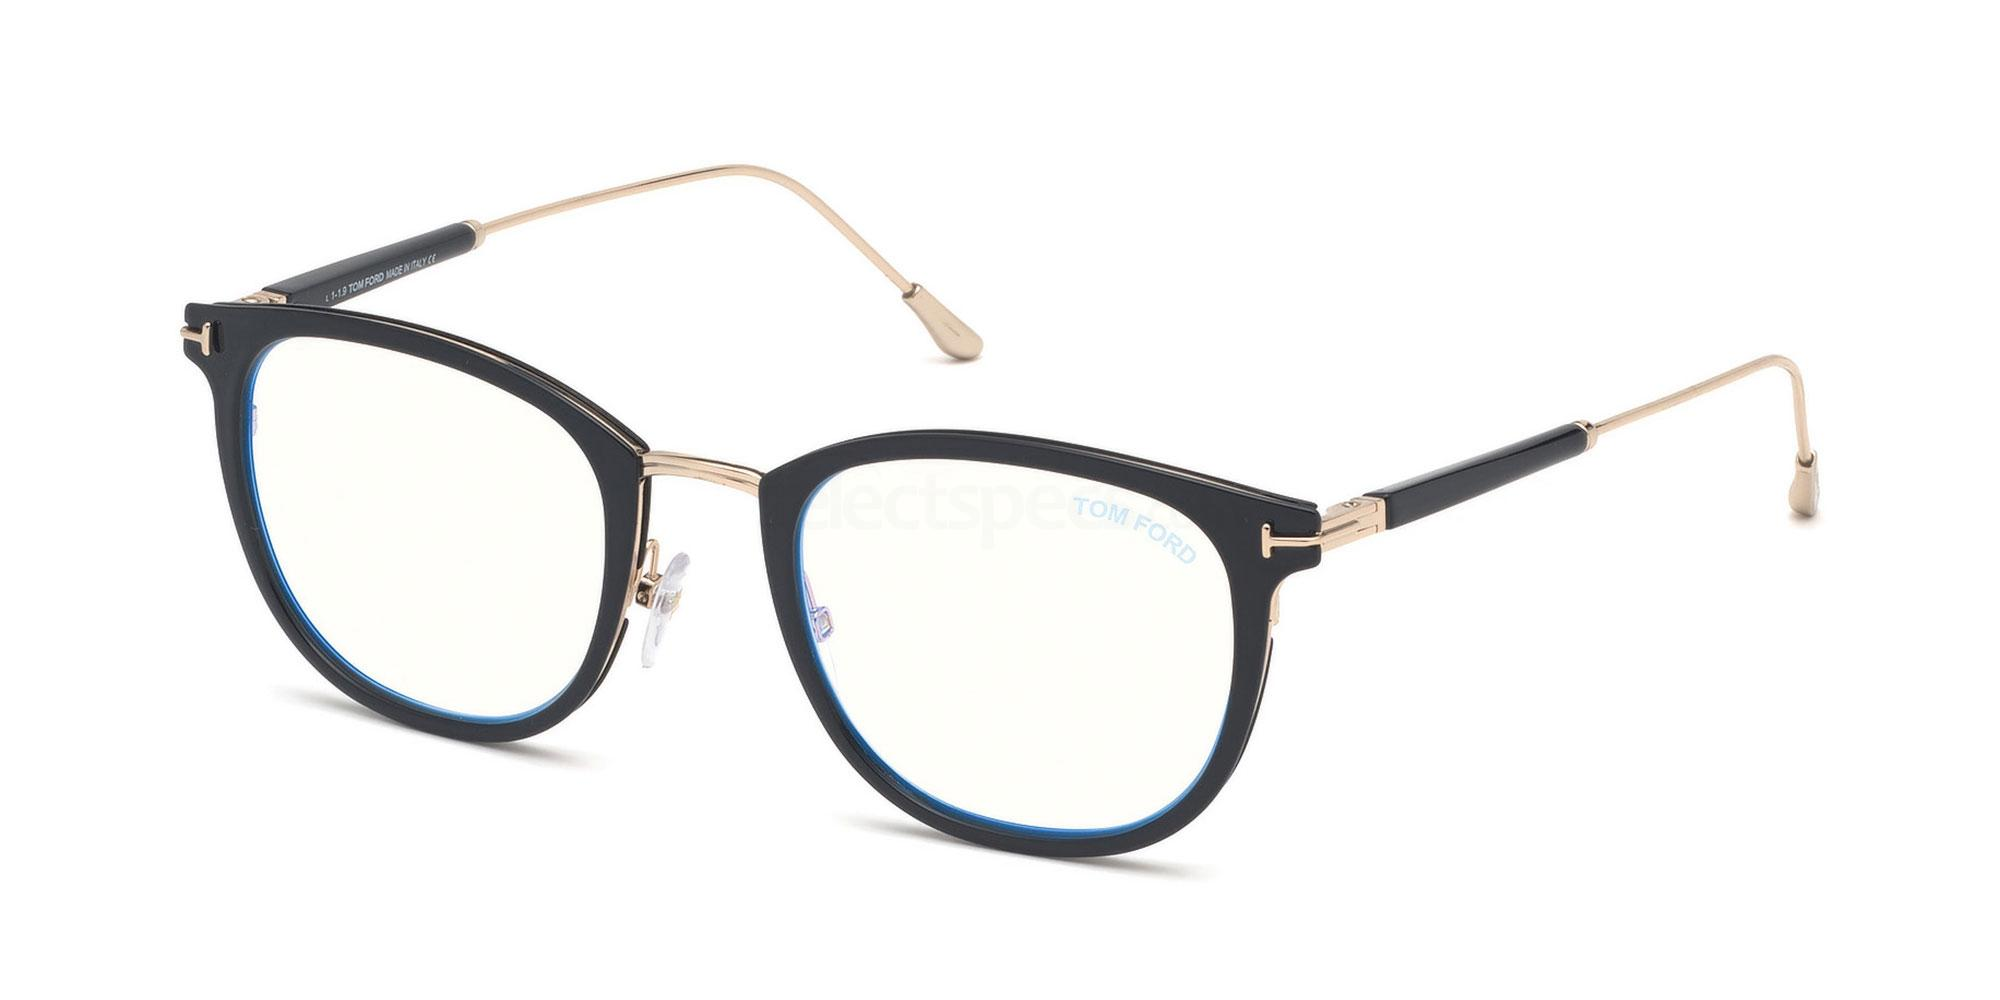 001 FT5612-B Glasses, Tom Ford